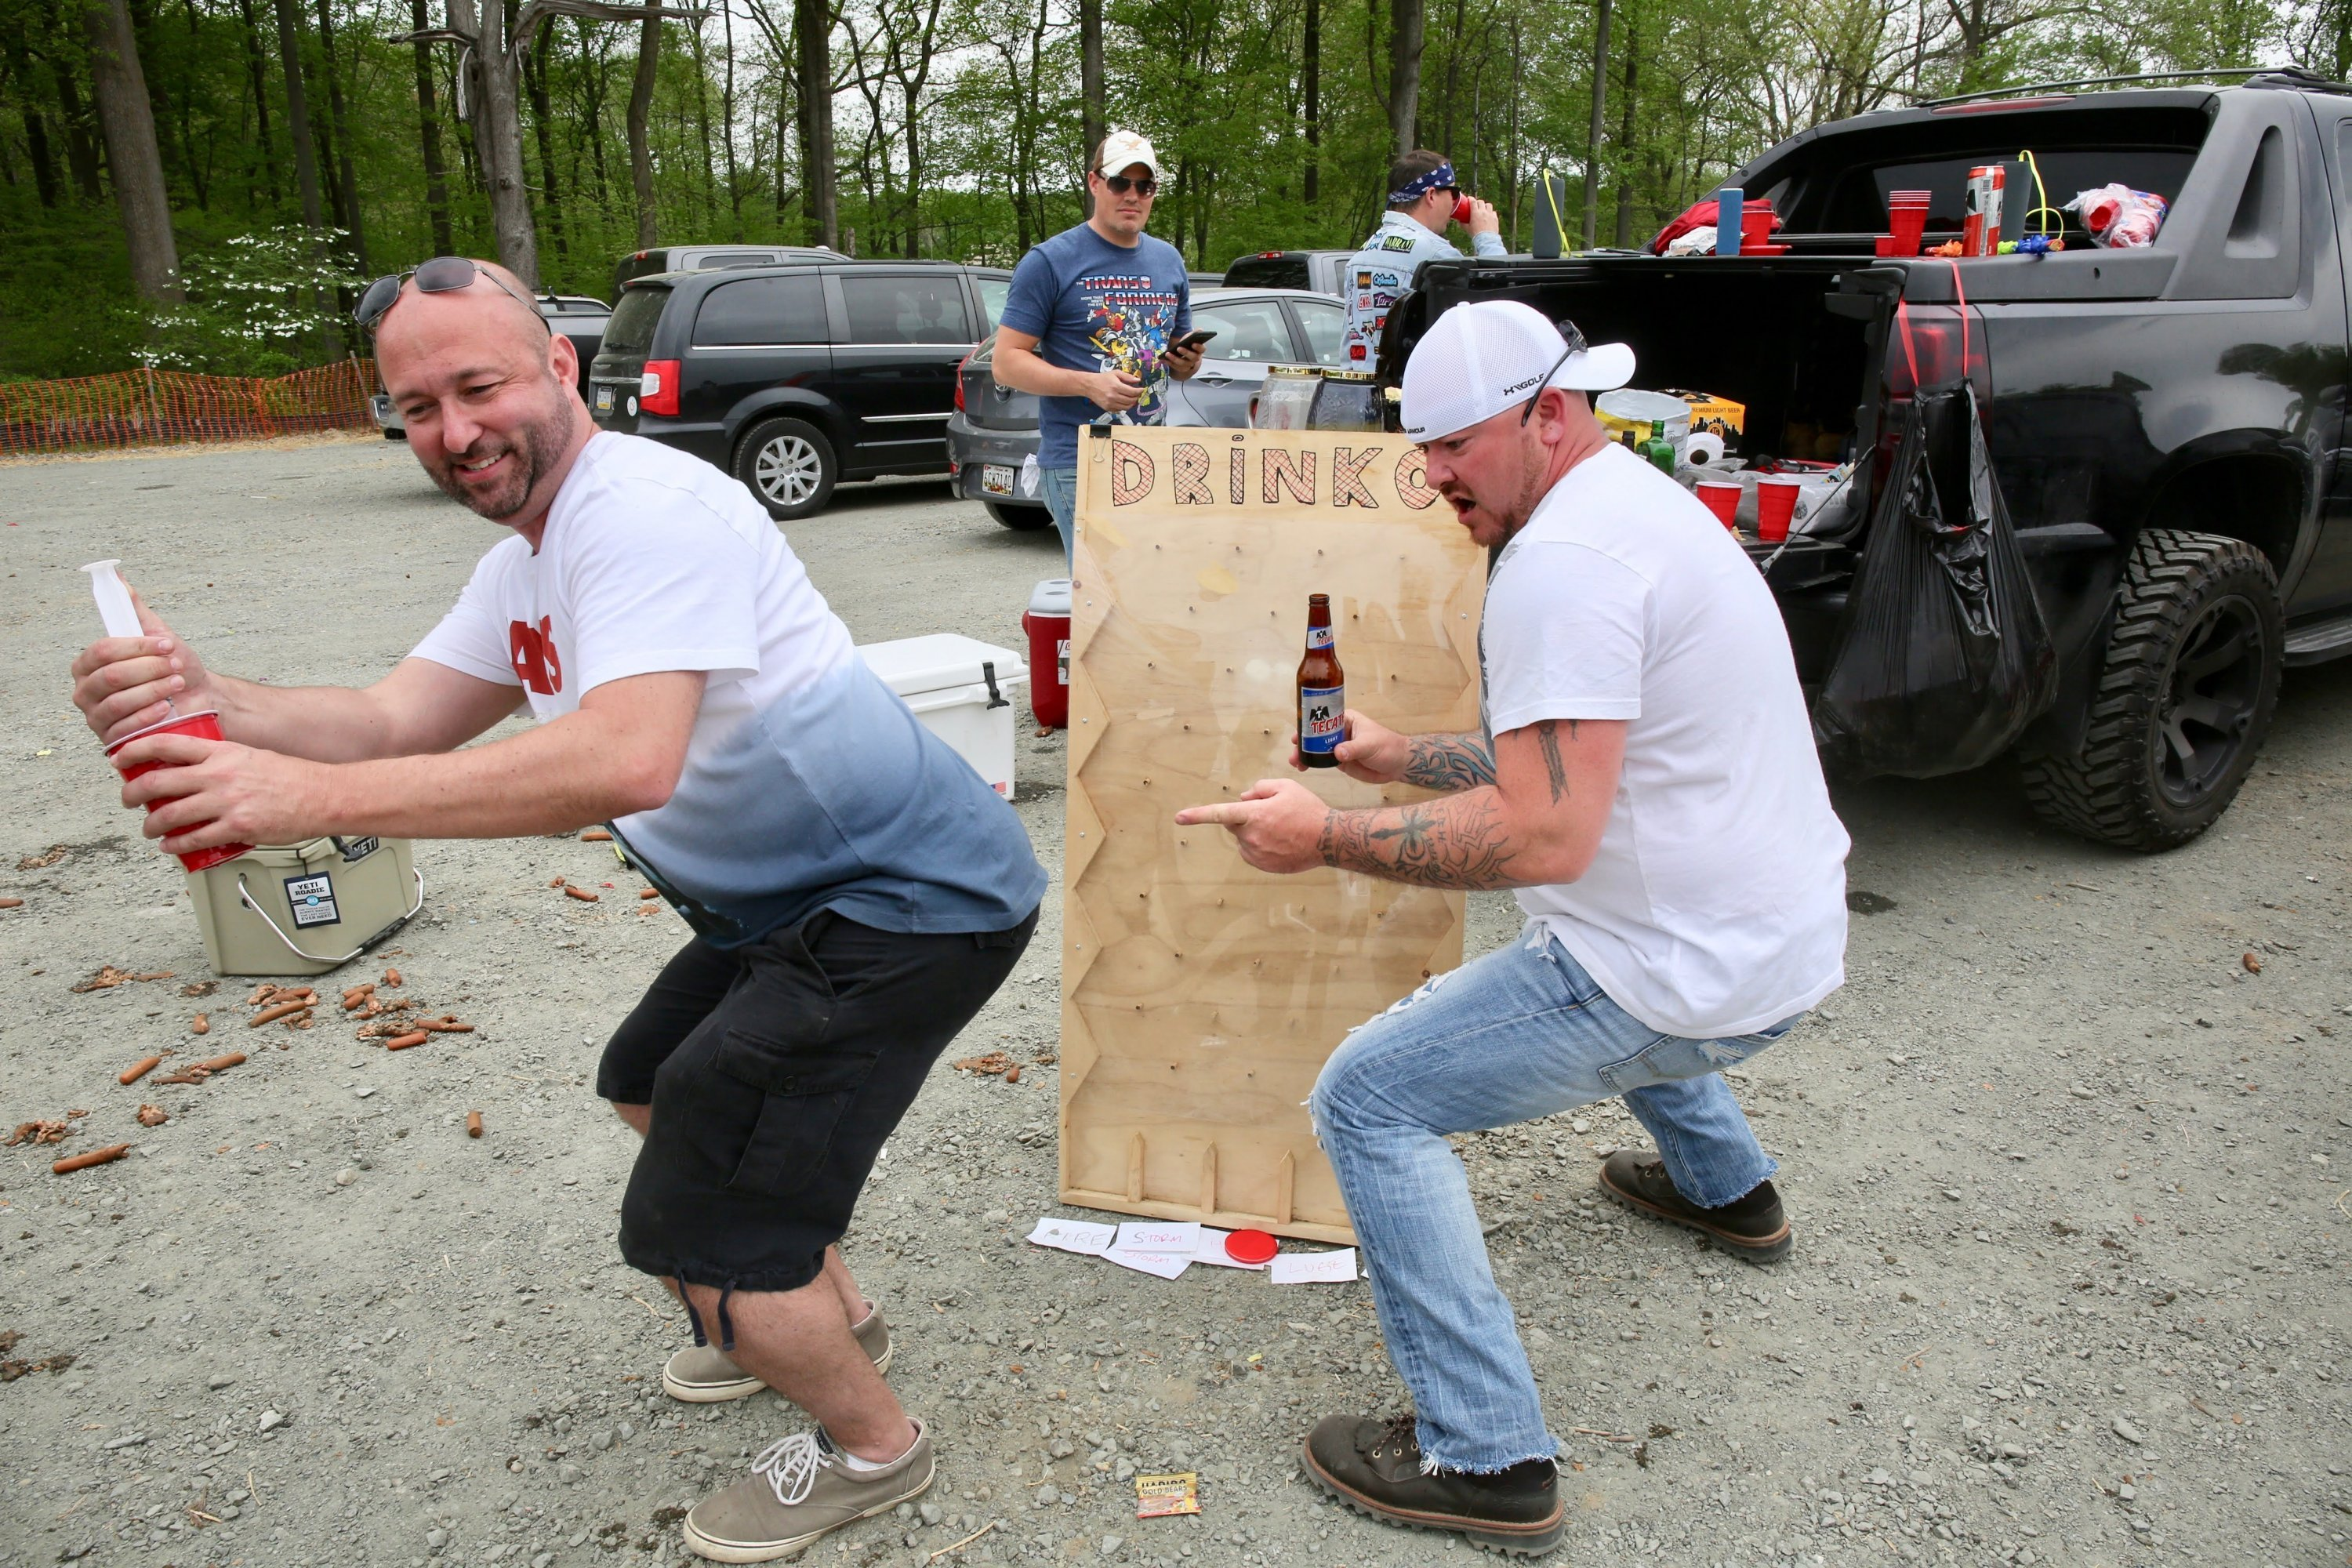 The infamous Drinko board and its creator, Chris (left).